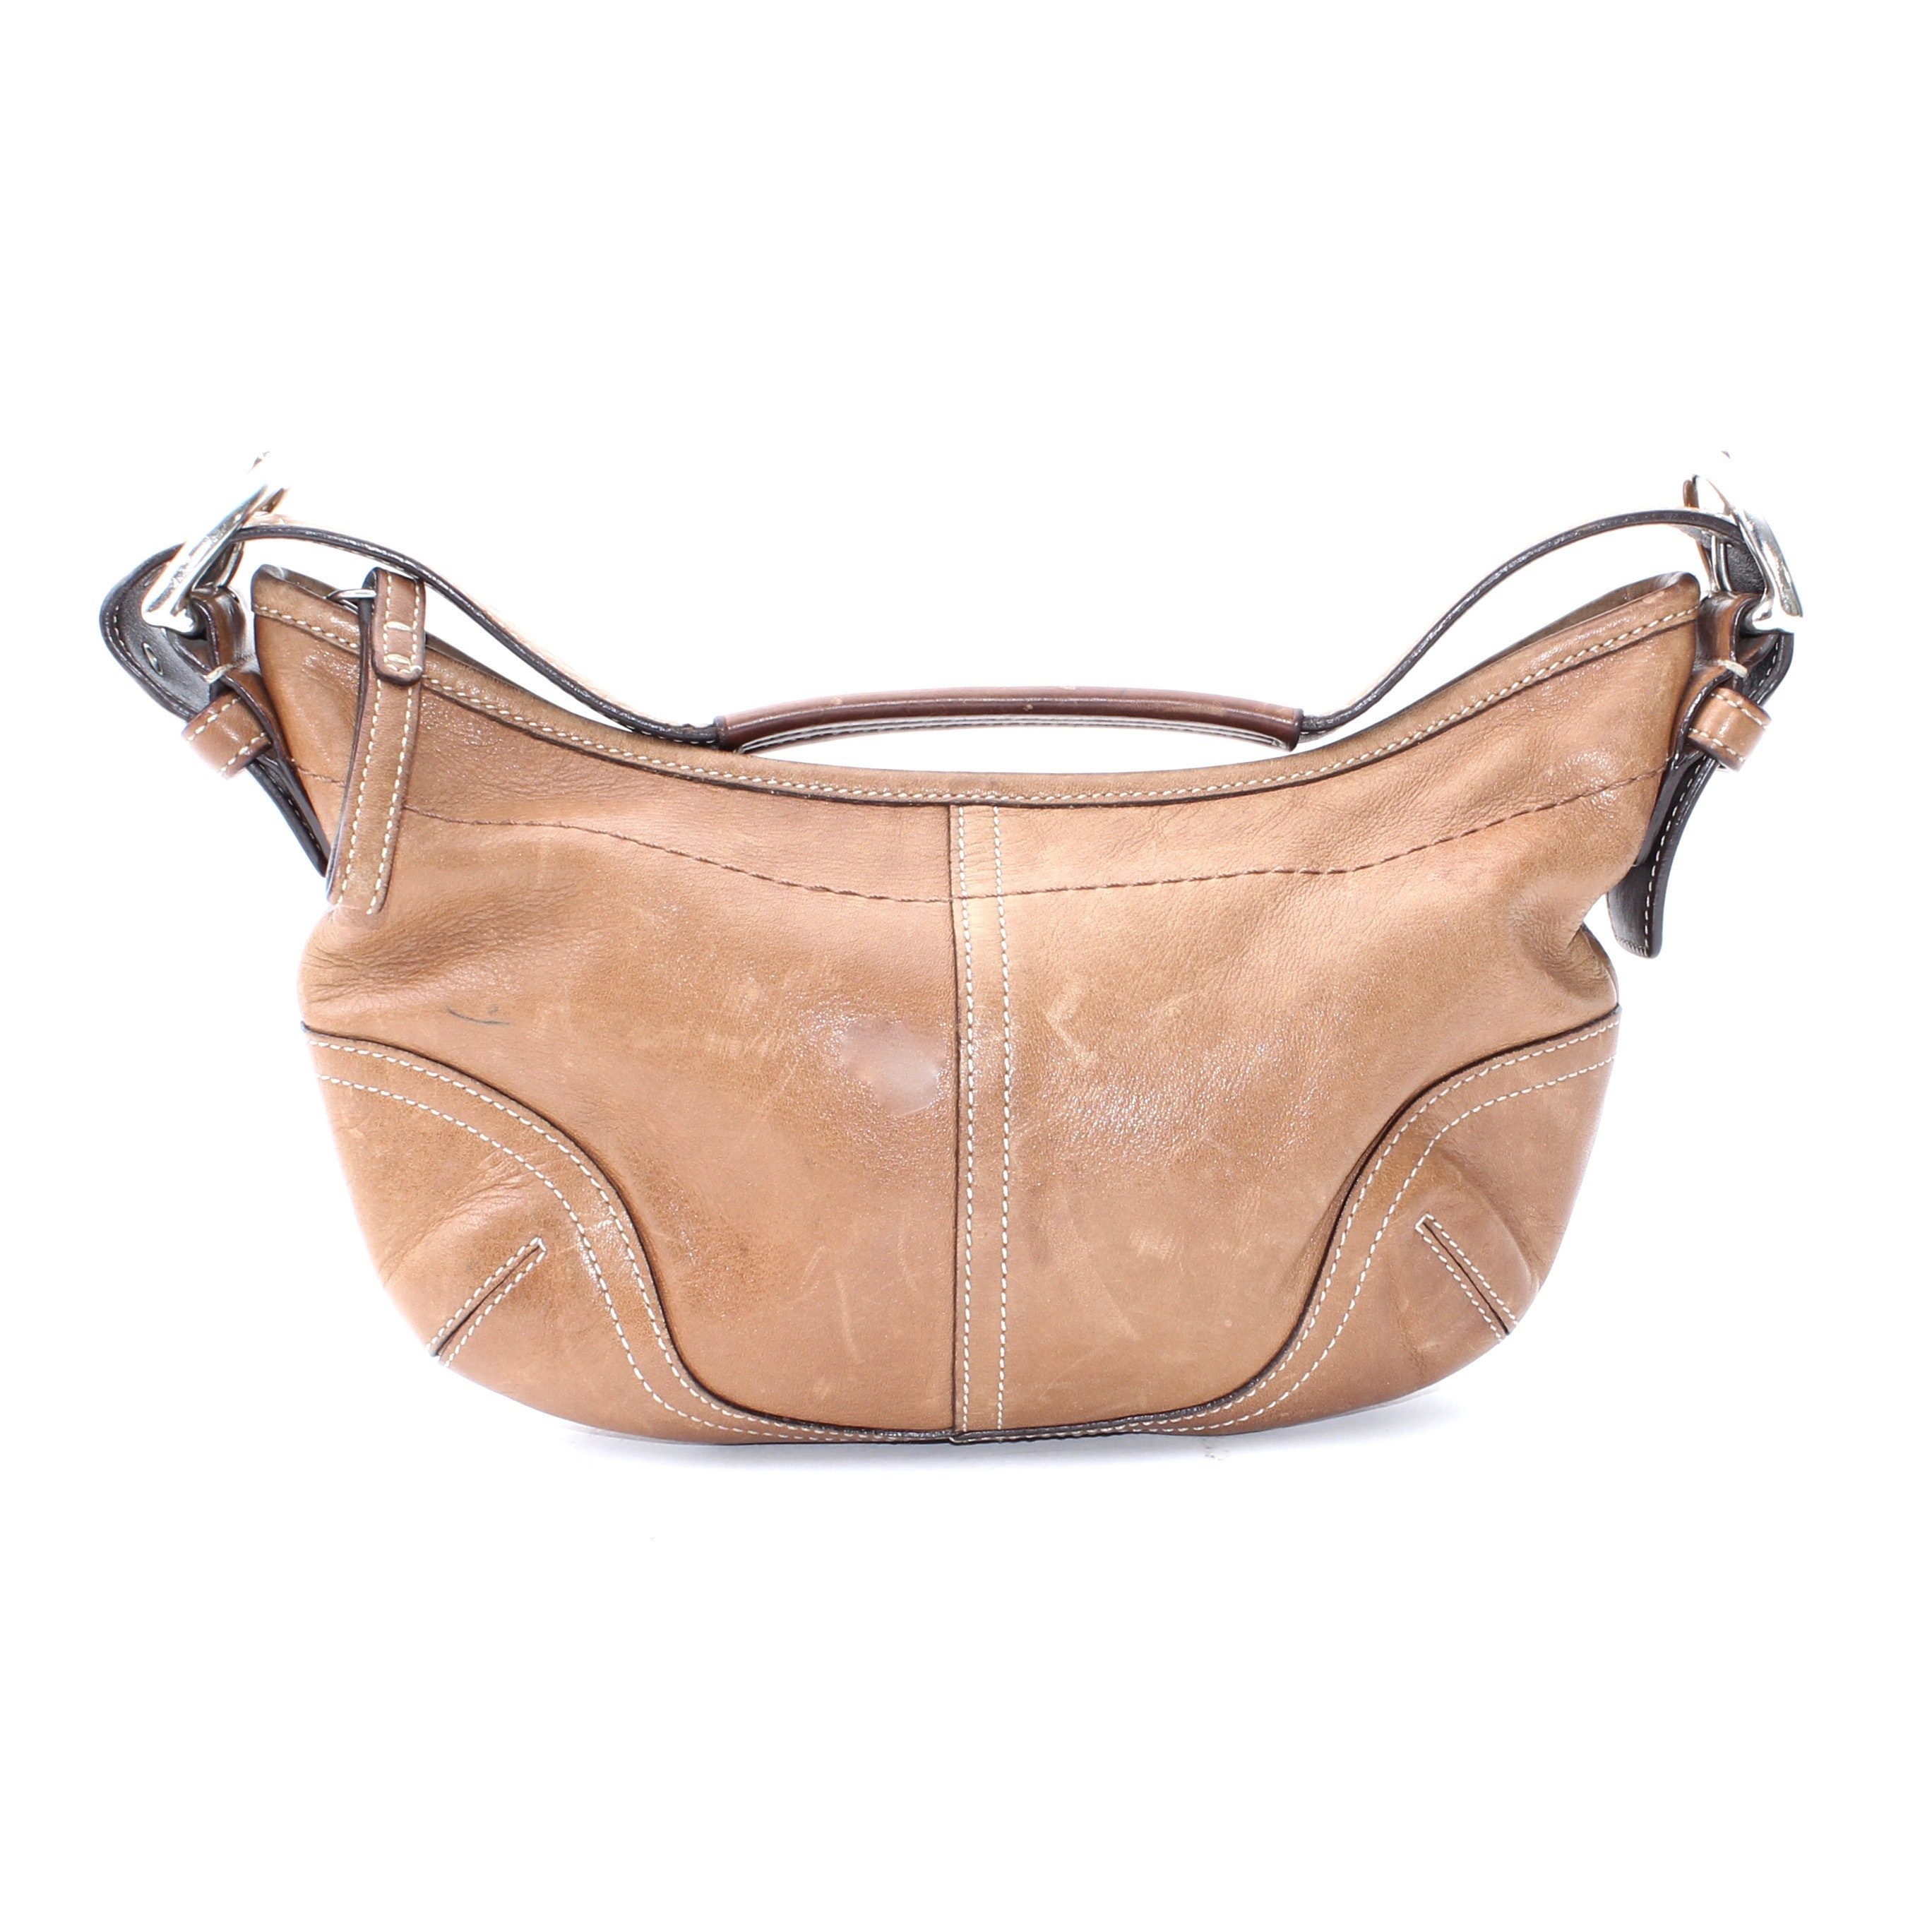 Coach SoHo Camel Brown Leather Small Hobo Purse